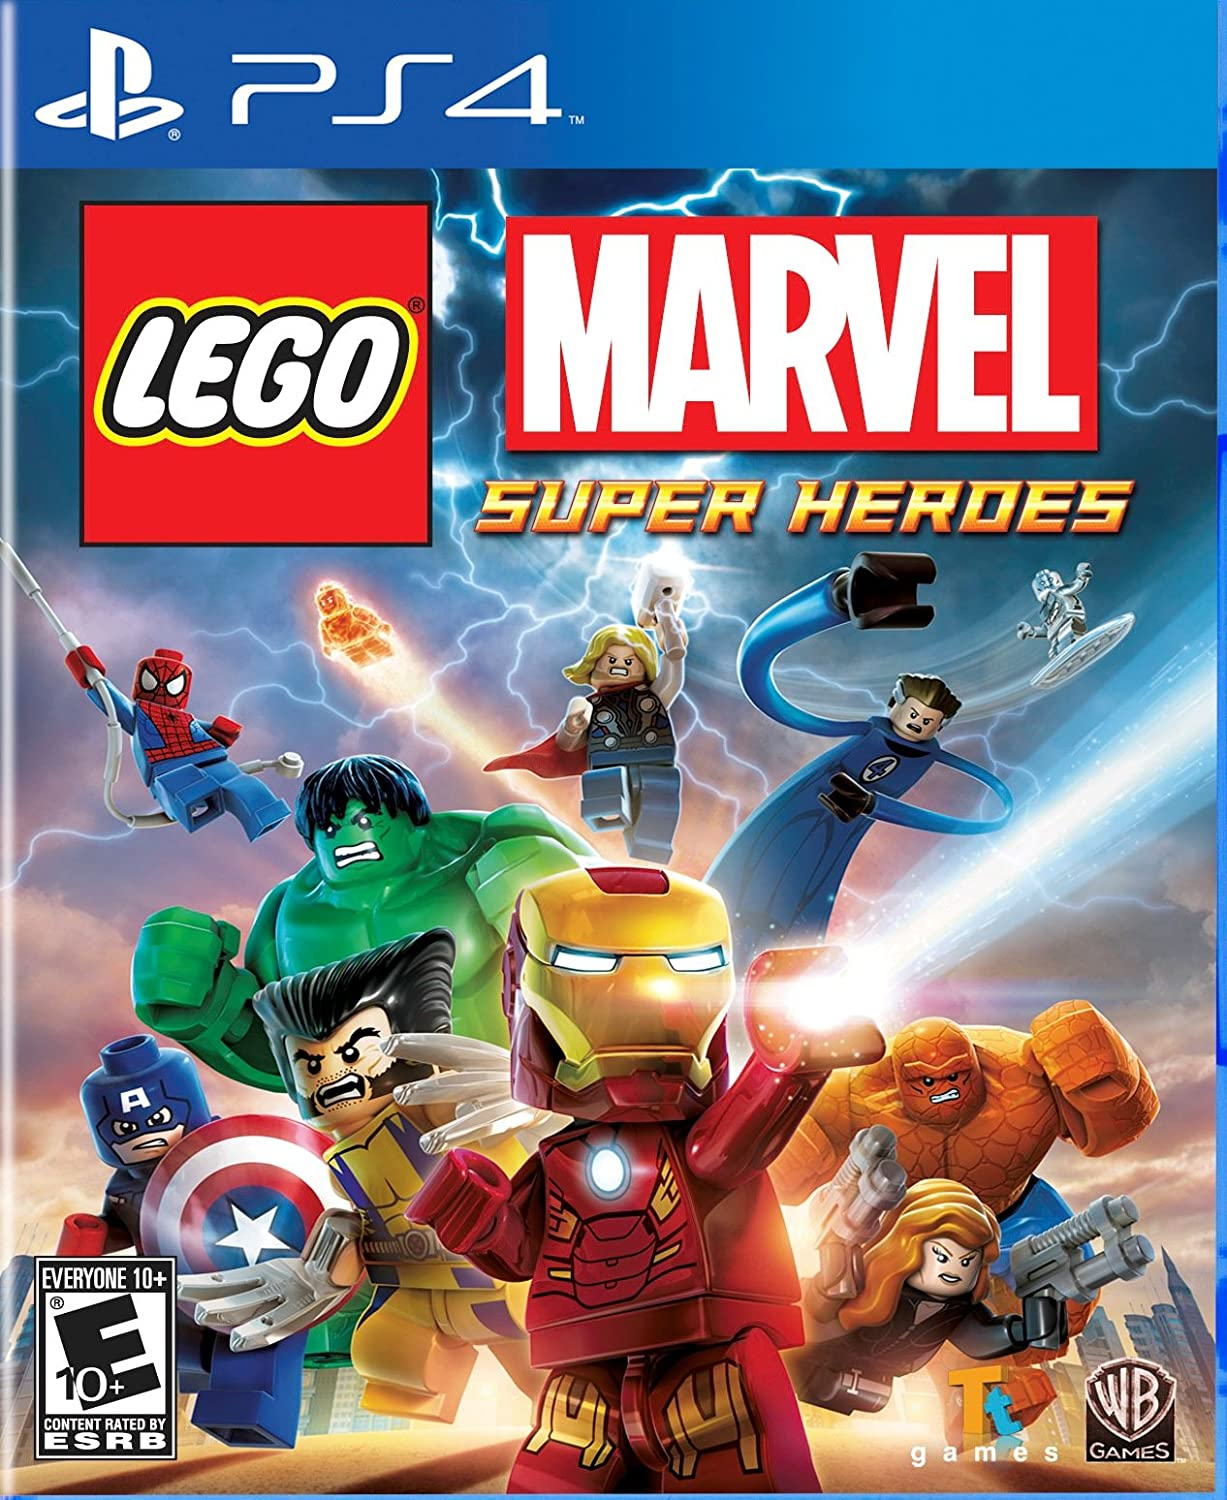 LEGO Marvel Super Heroes - PlayStation 4 by Warner Home Video - Games: Amazon.es: Videojuegos